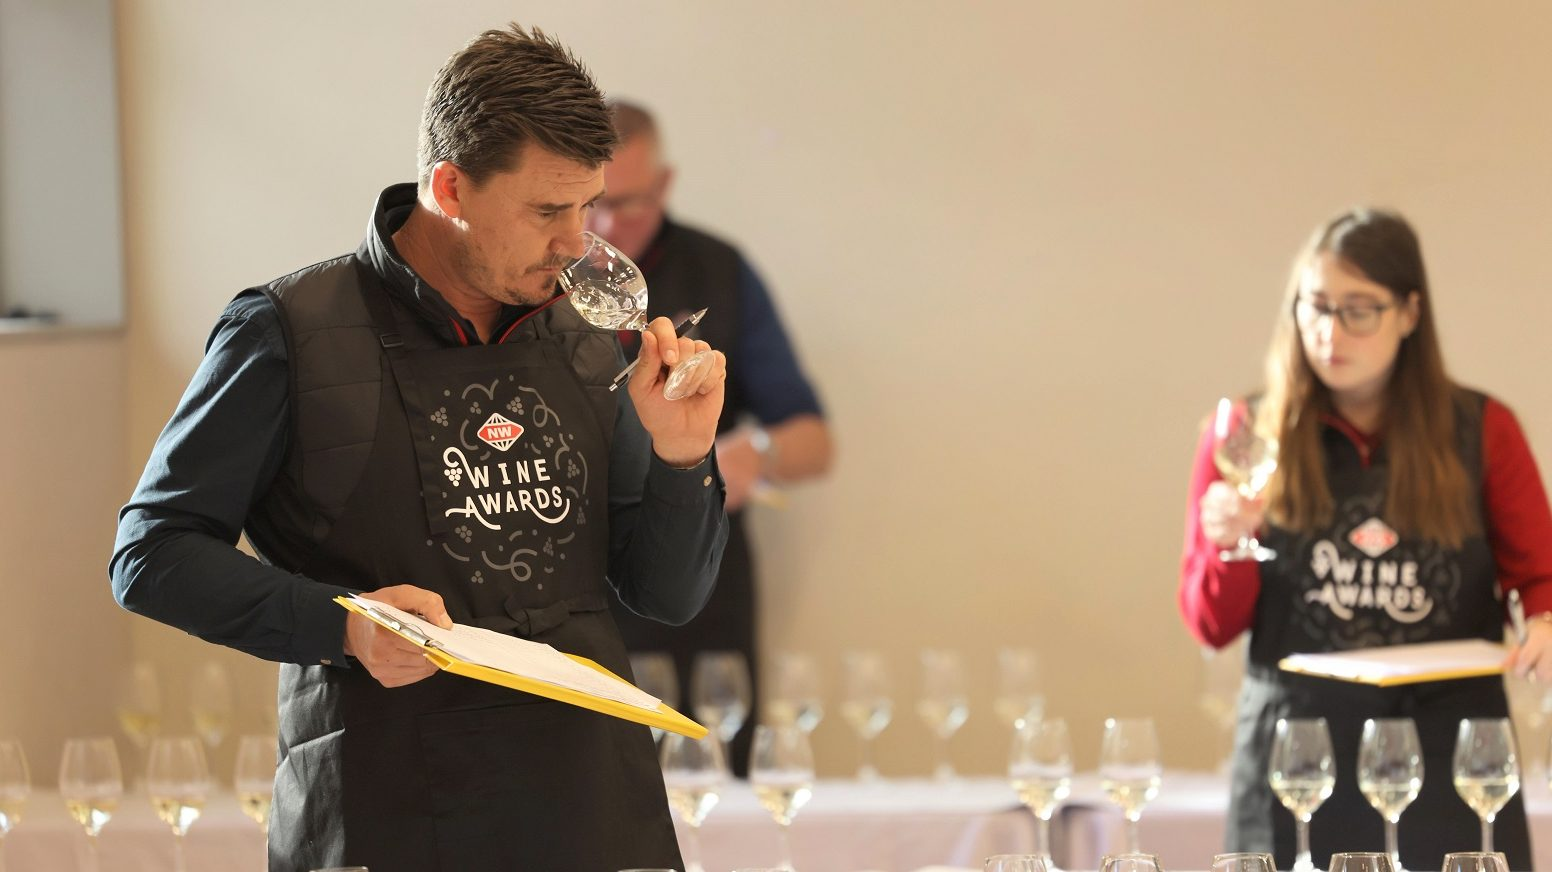 International and NZ wines tasting by 3 judges